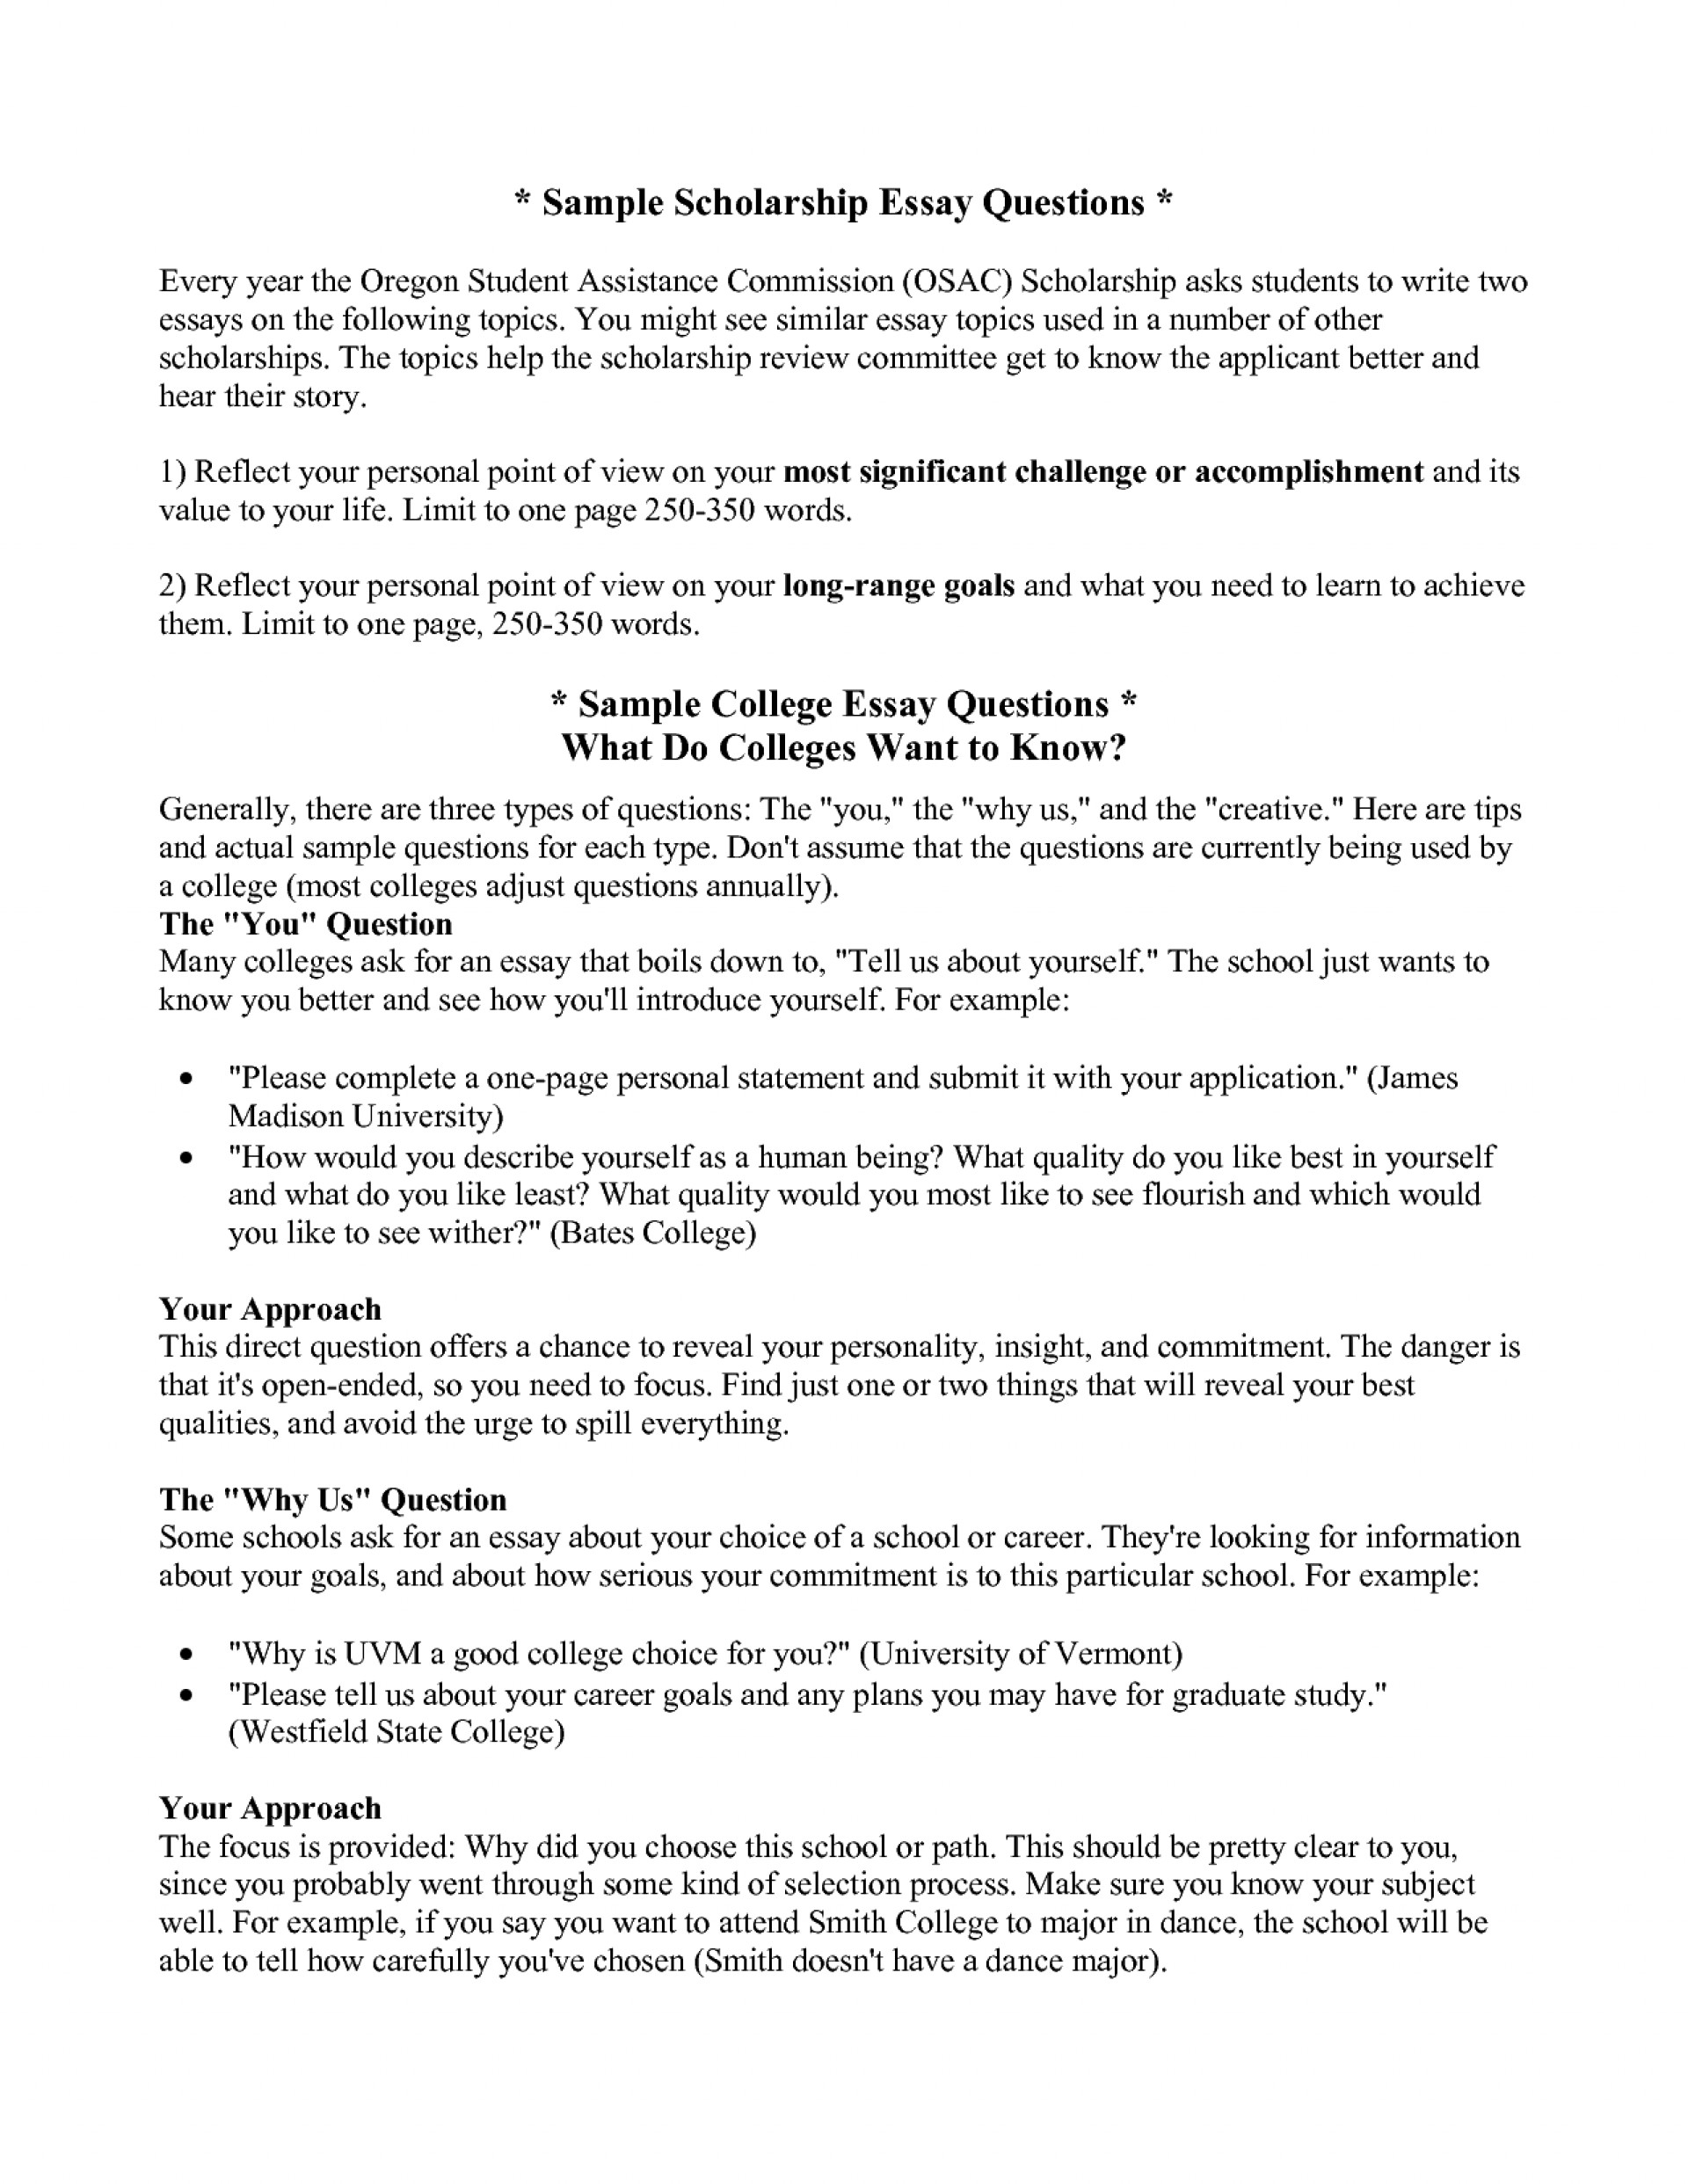 023 Essay Example Critical Thinking In College Management Houston Top Ten Mfa Sample Question For Your Template Application Questions Frightening Topics 2017 Boston Prompts Harvard Ideas 1920